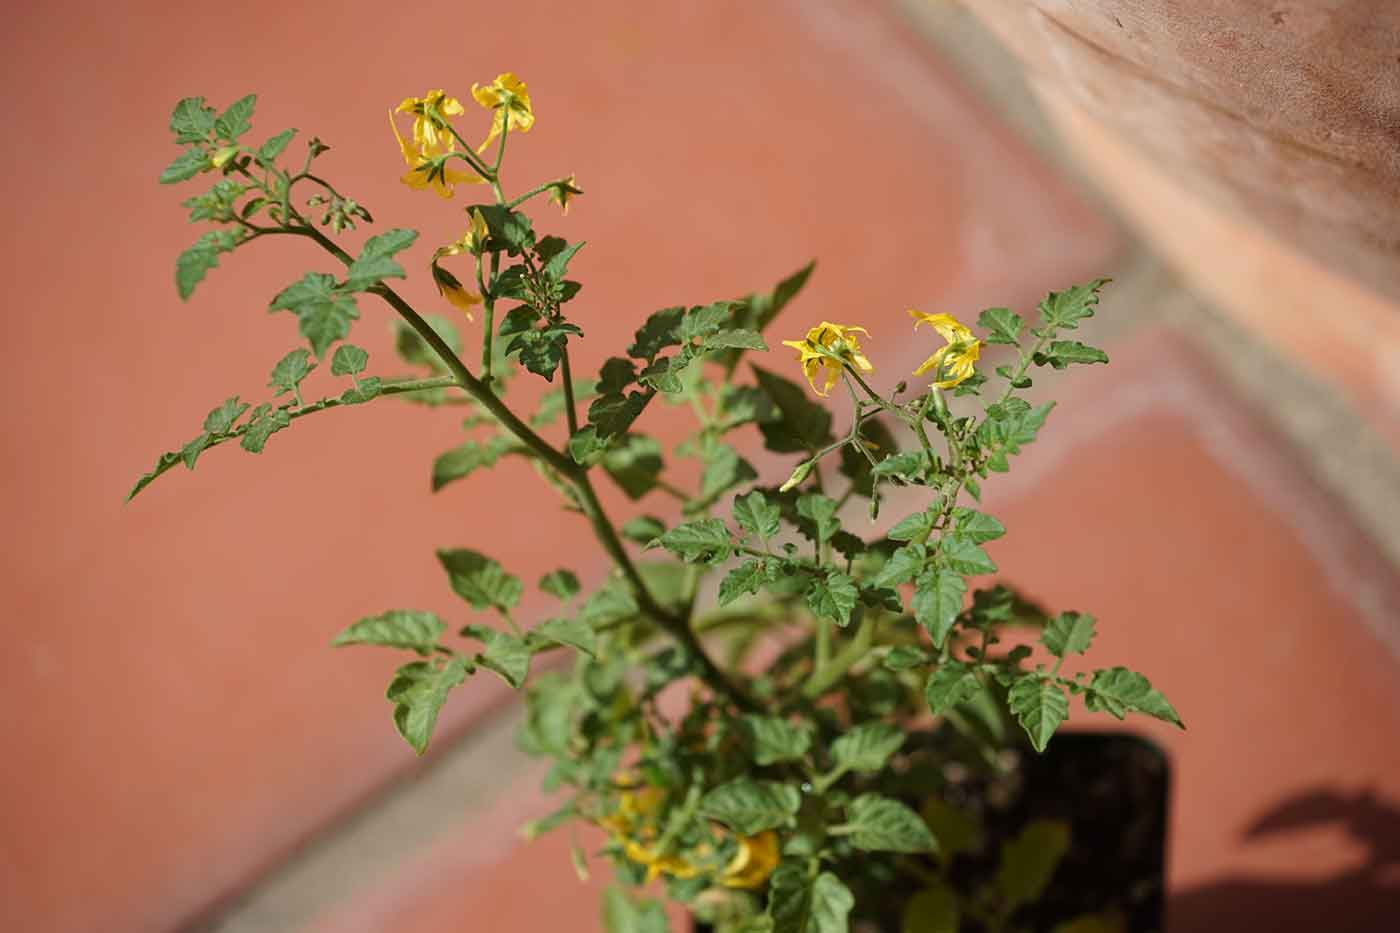 tomato seedling with yellow flowers on it